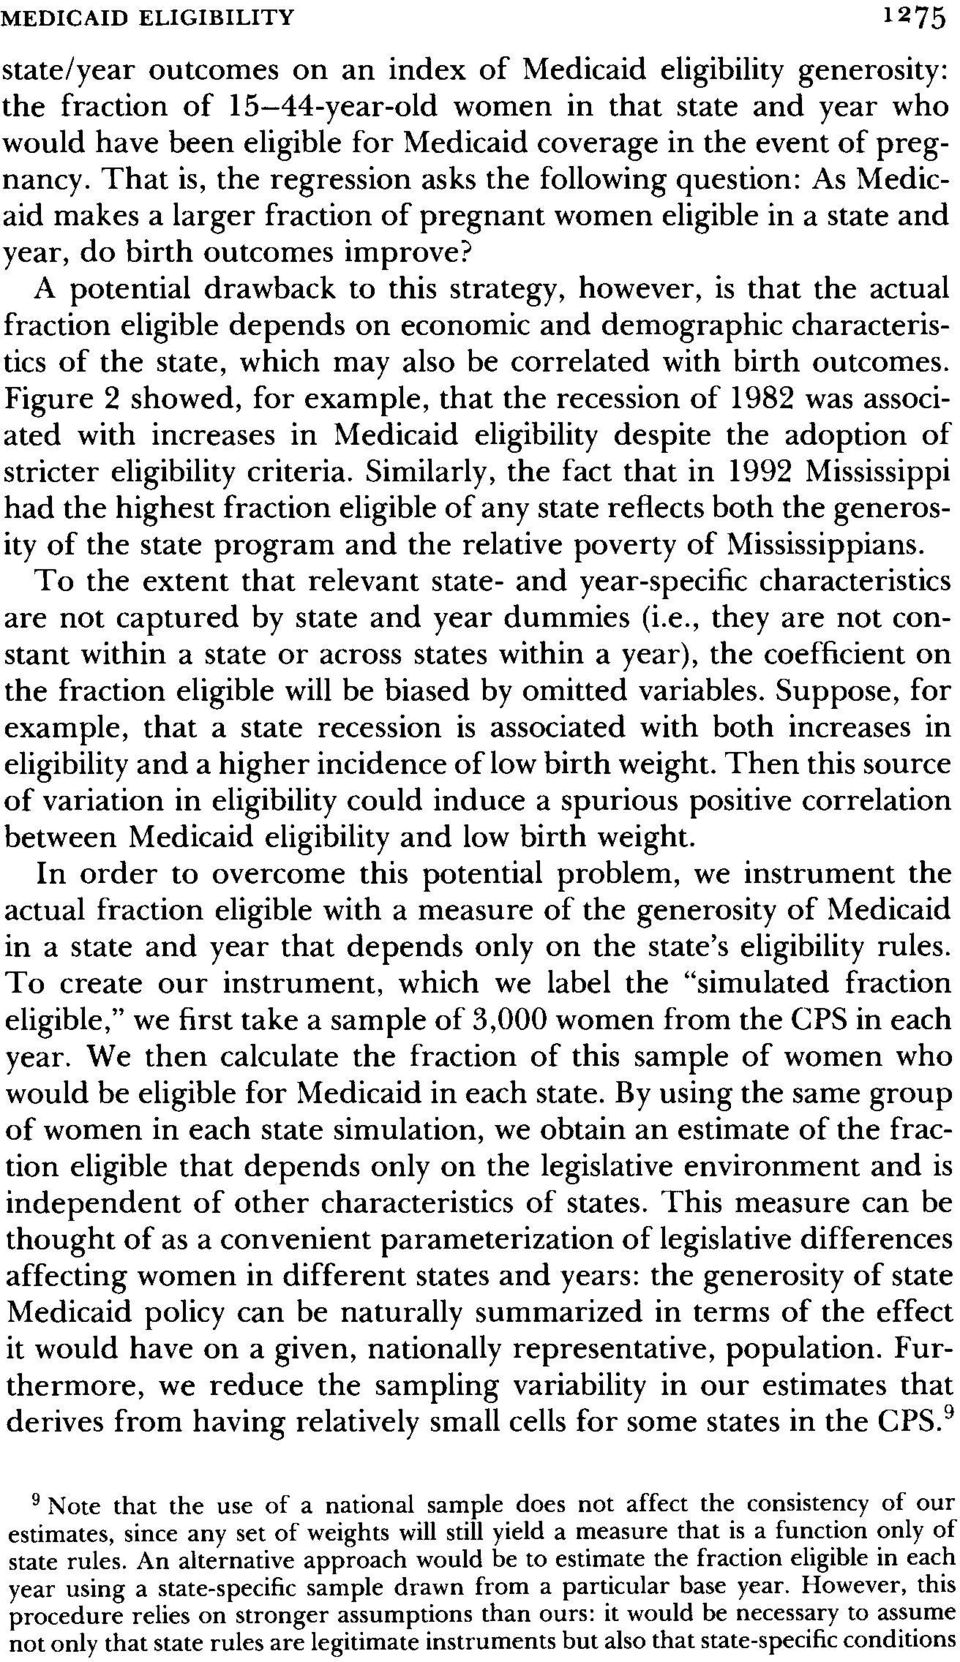 A potential drawback to this strategy, however, is that the actual fraction eligible depends on economic and demographic characteristics of the state, which may also be correlated with birth outcomes.